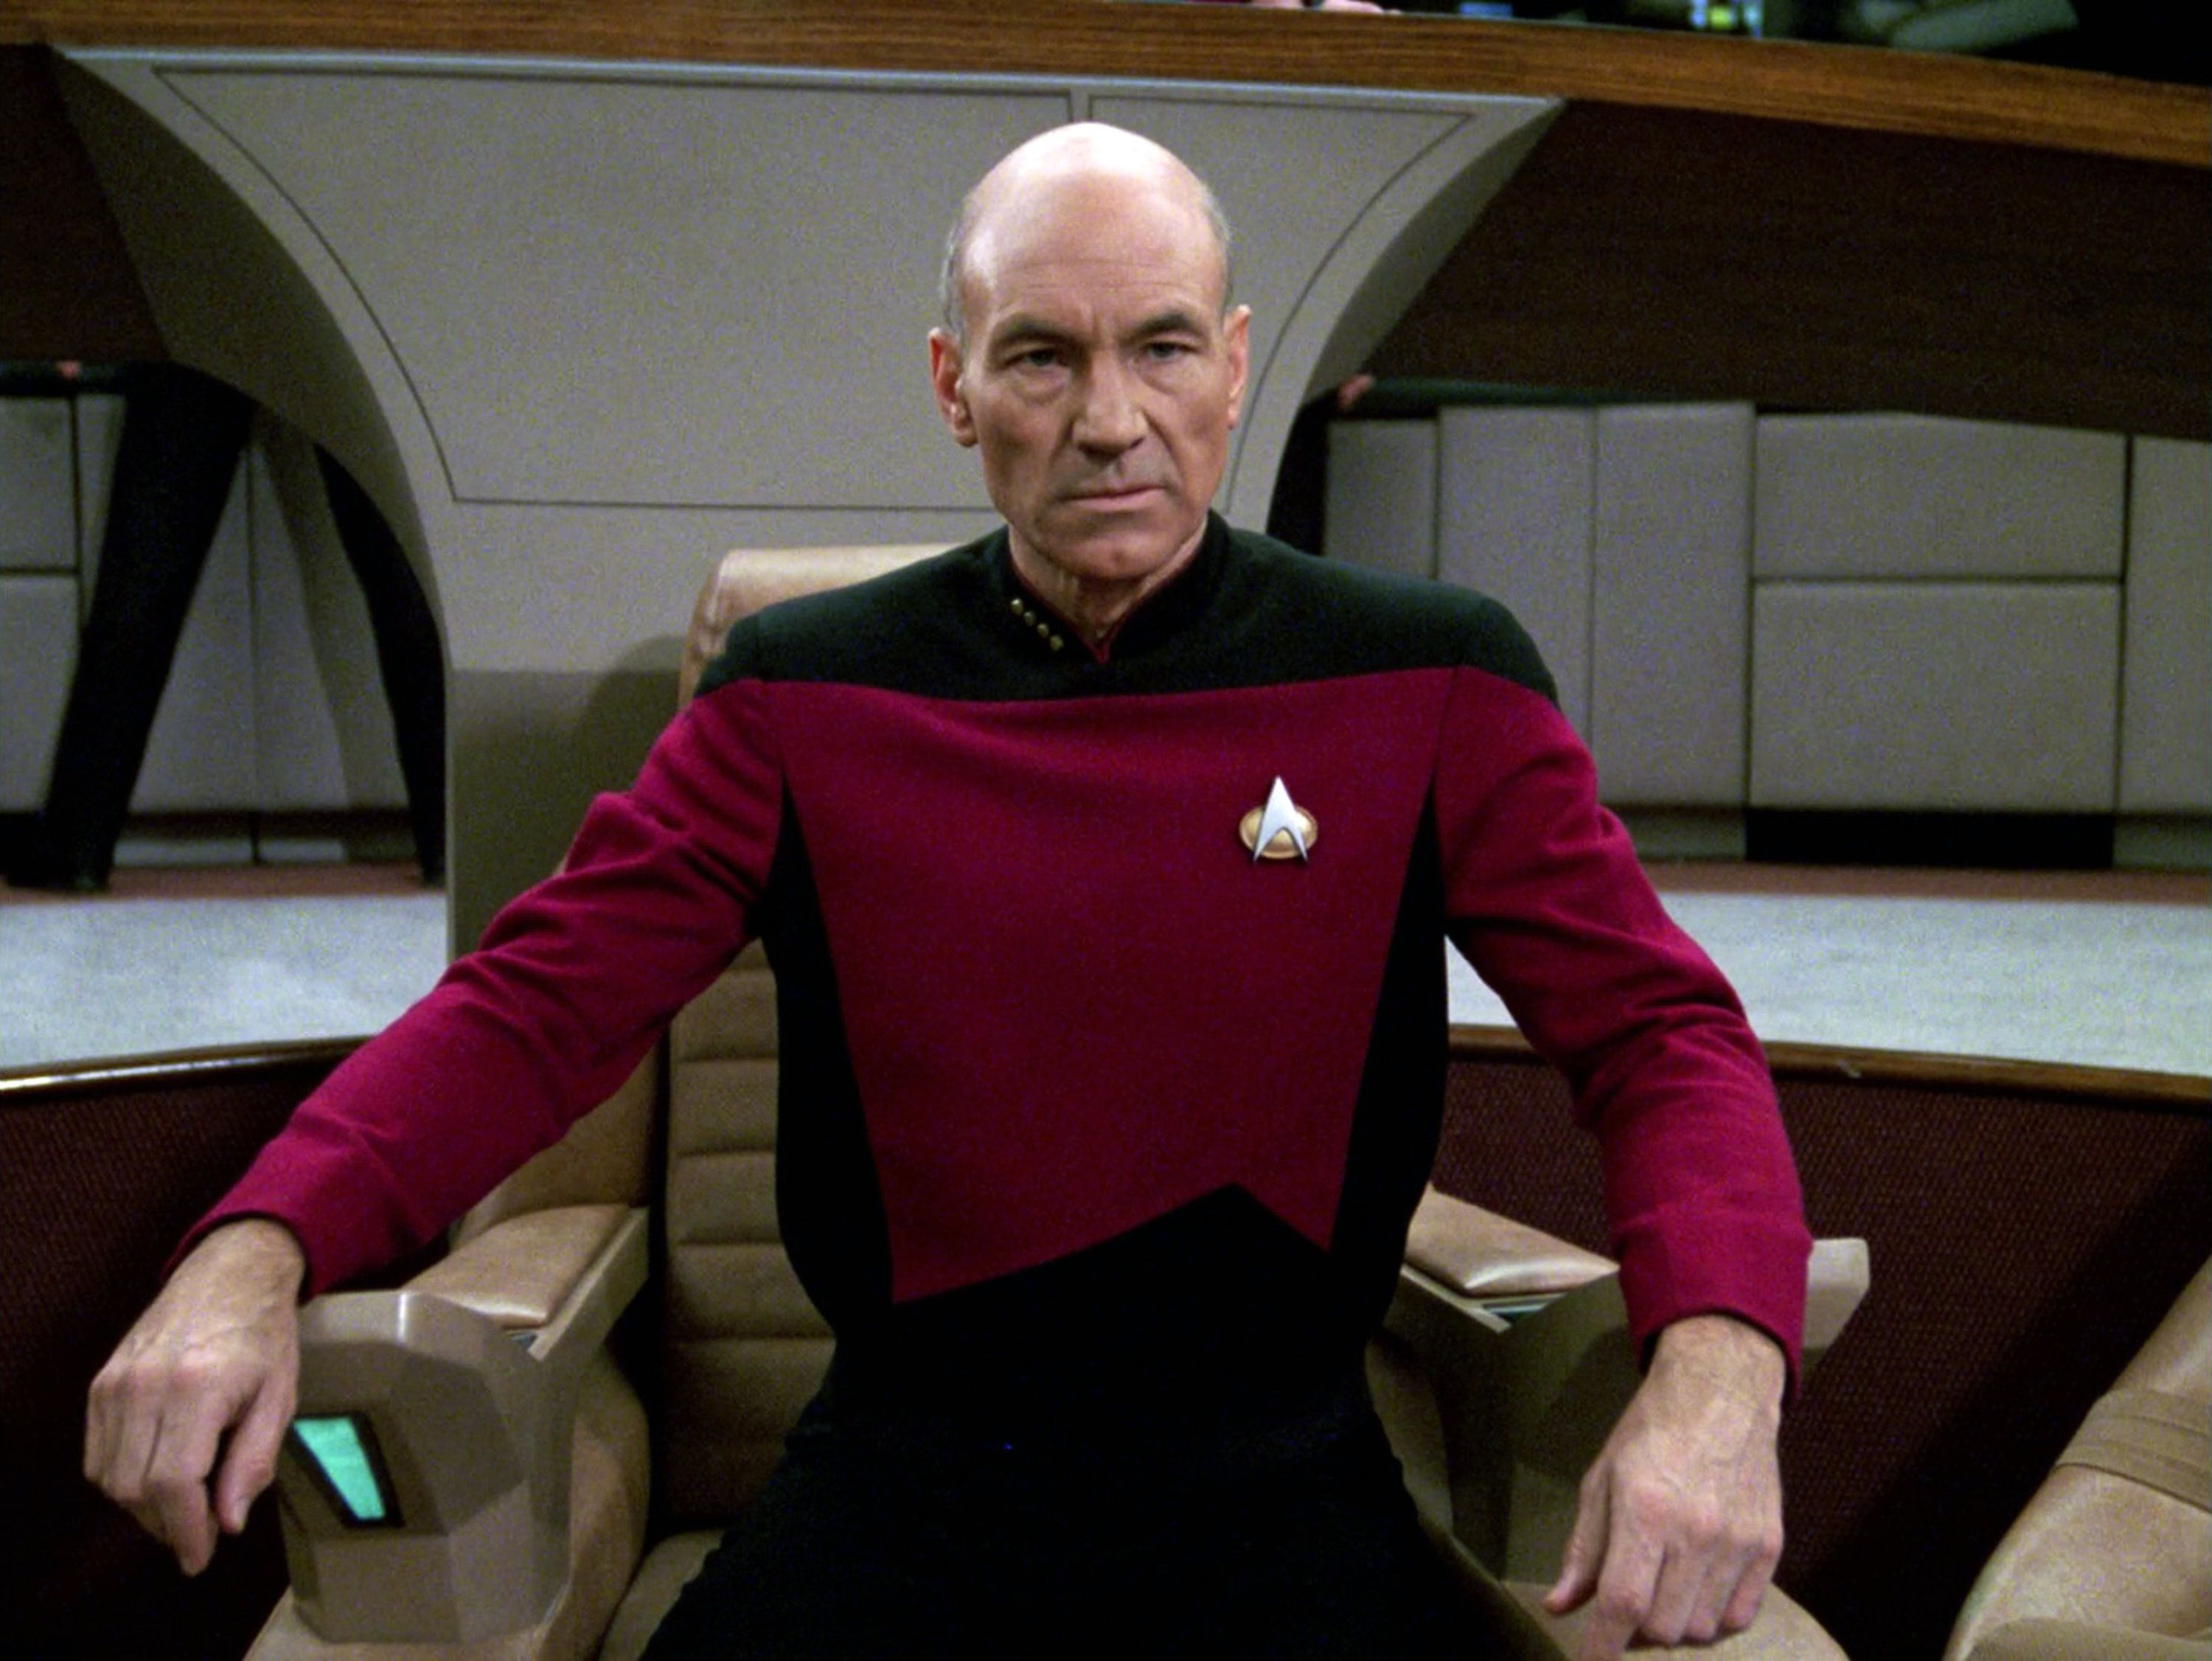 LOS ANGELES - JANUARY 8: Patrick Stewart as Captain Jean-Luc Picard in the STAR TREK: THE NEXT GENERATION episode, 'The Hunted.' Season 3, episode 11.  Original air date, January 8, 1990.  (Photo by CBS via Getty Images)